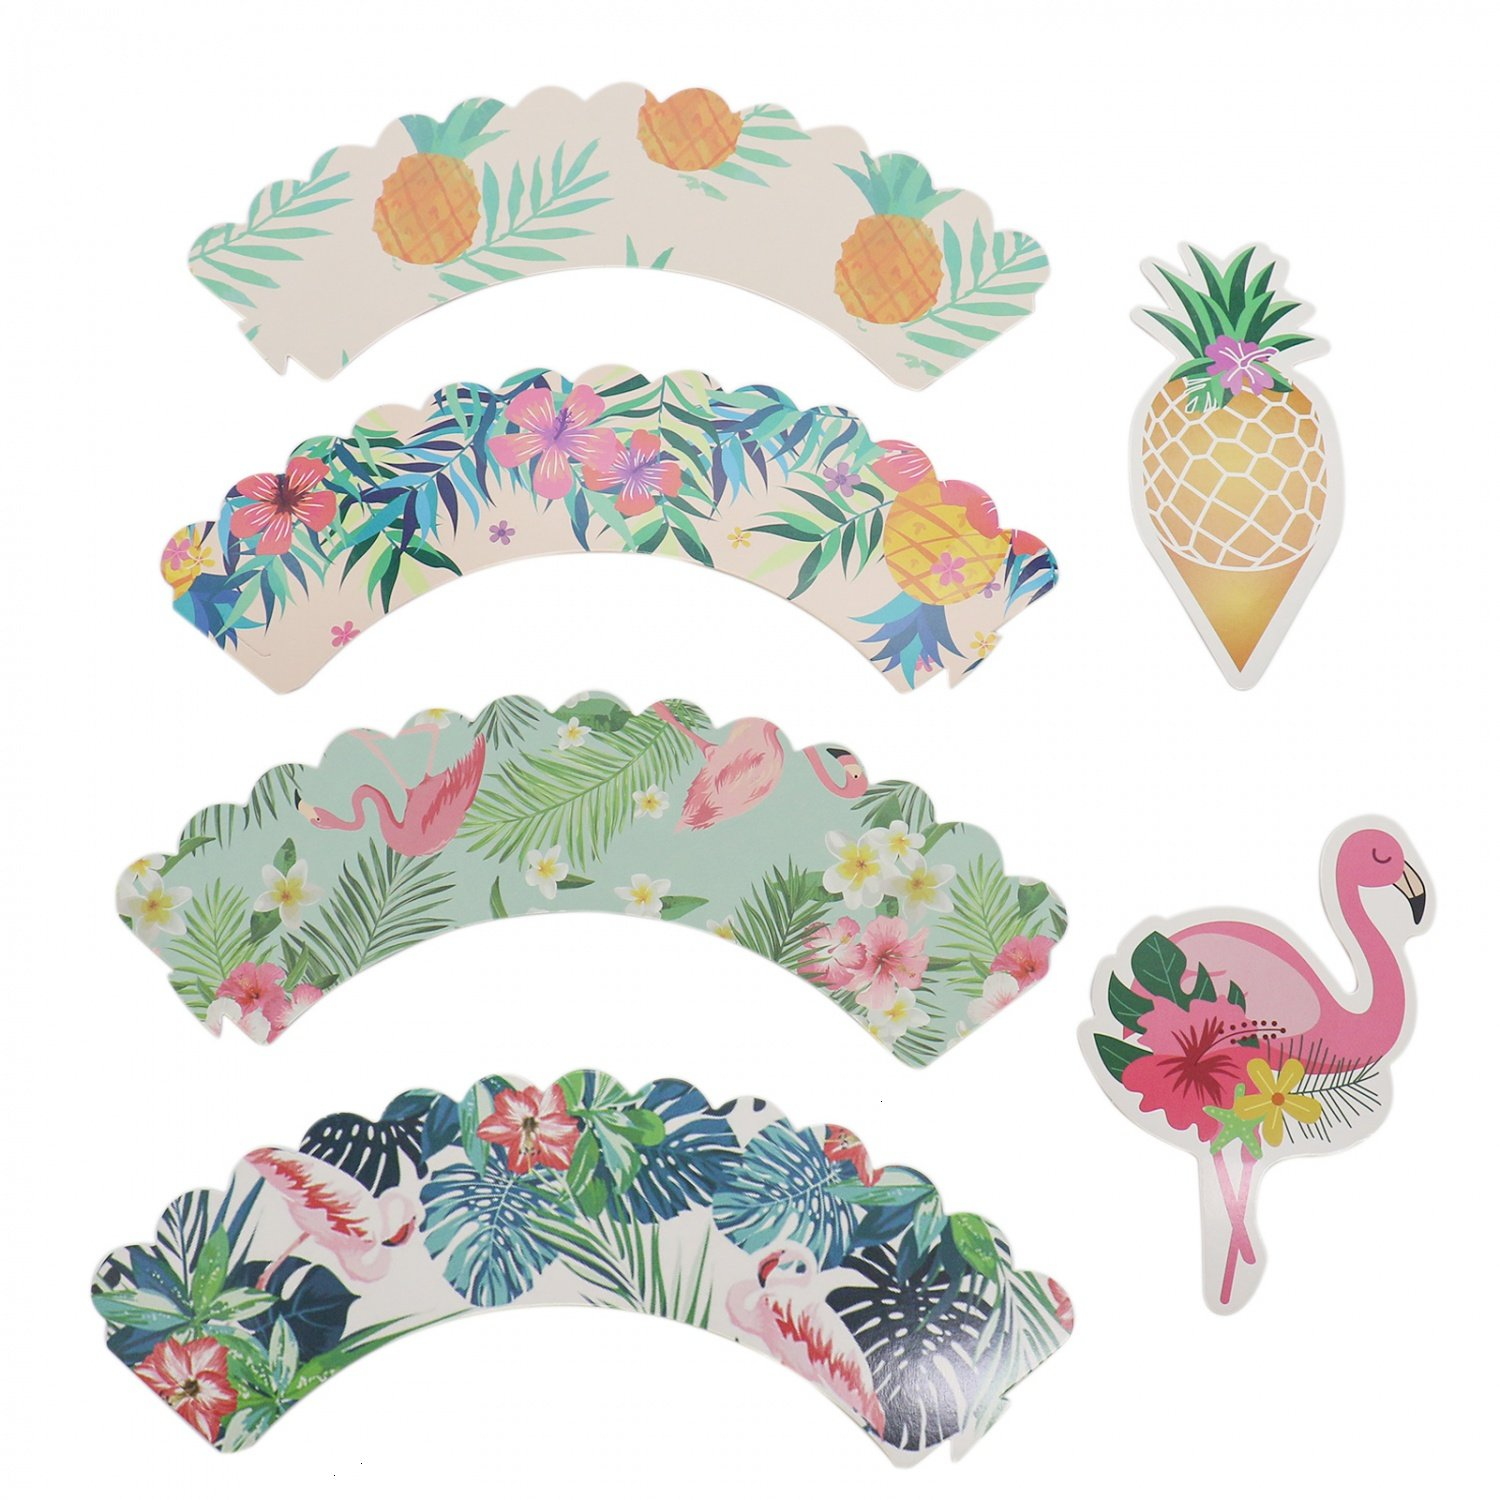 Buorsa Set of 36 Cupcake Toppers Wrappers Flamingo/Pineapple Cake Decoration Tropical Hawaiian Pool Party Supplies by Buorsa